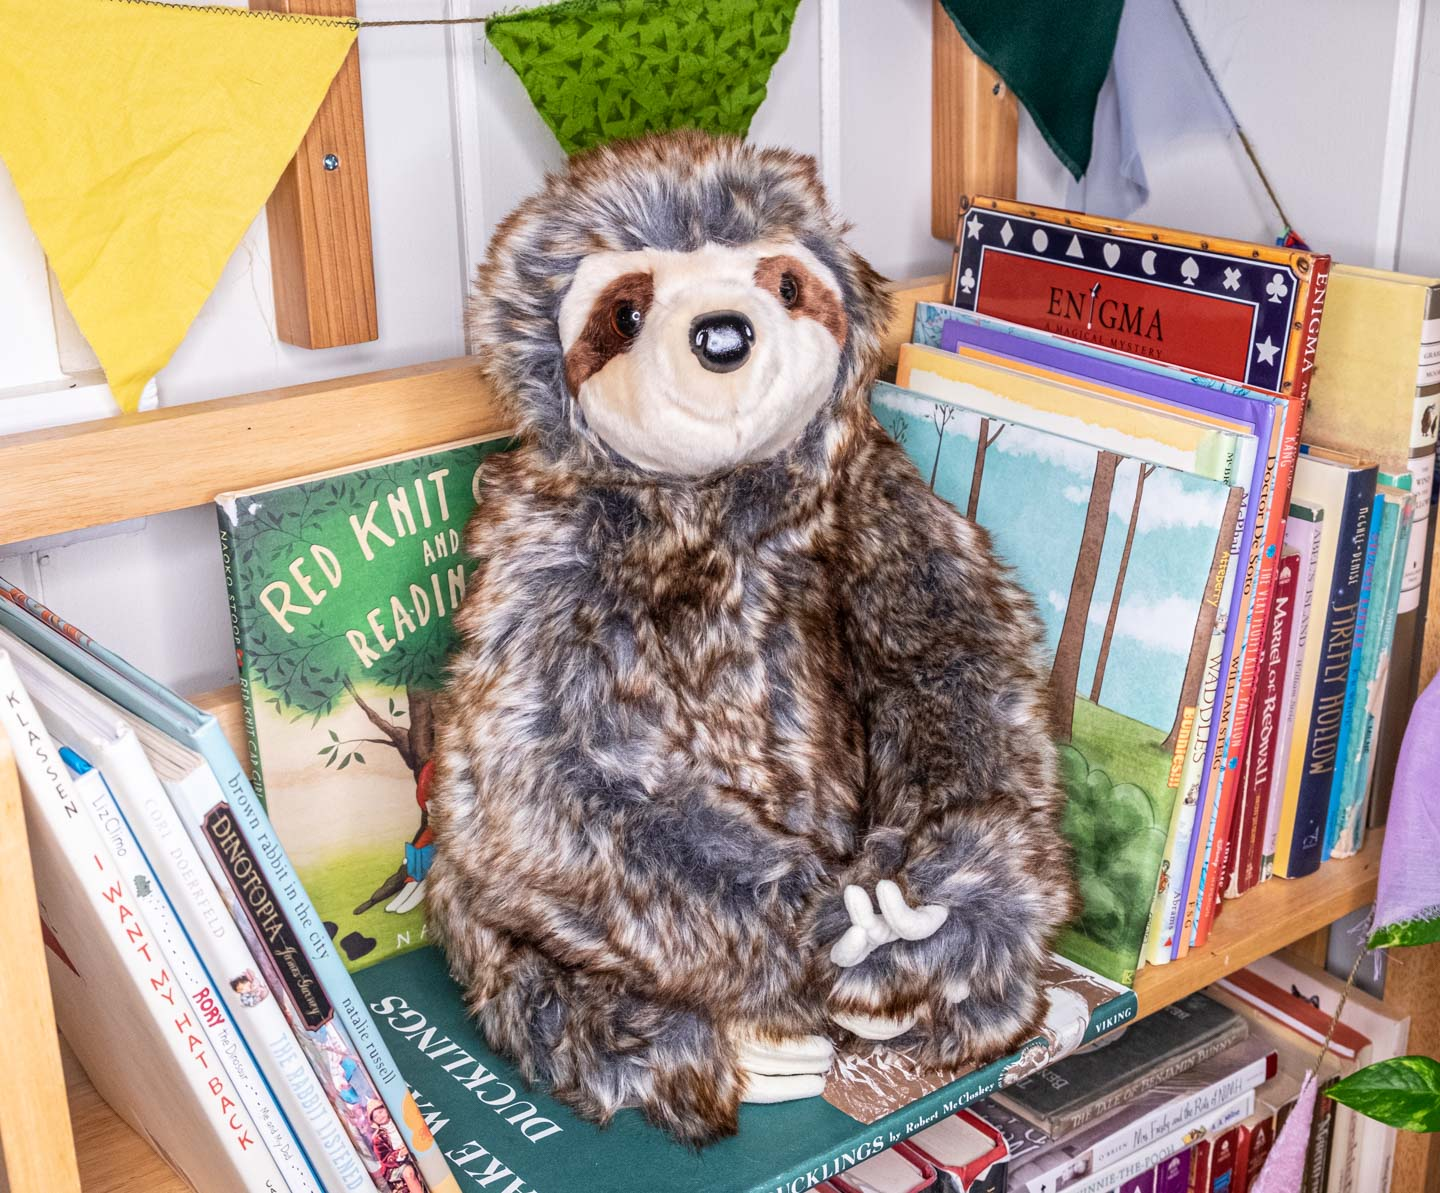 Smiling stuffed animal sloth in sitting position